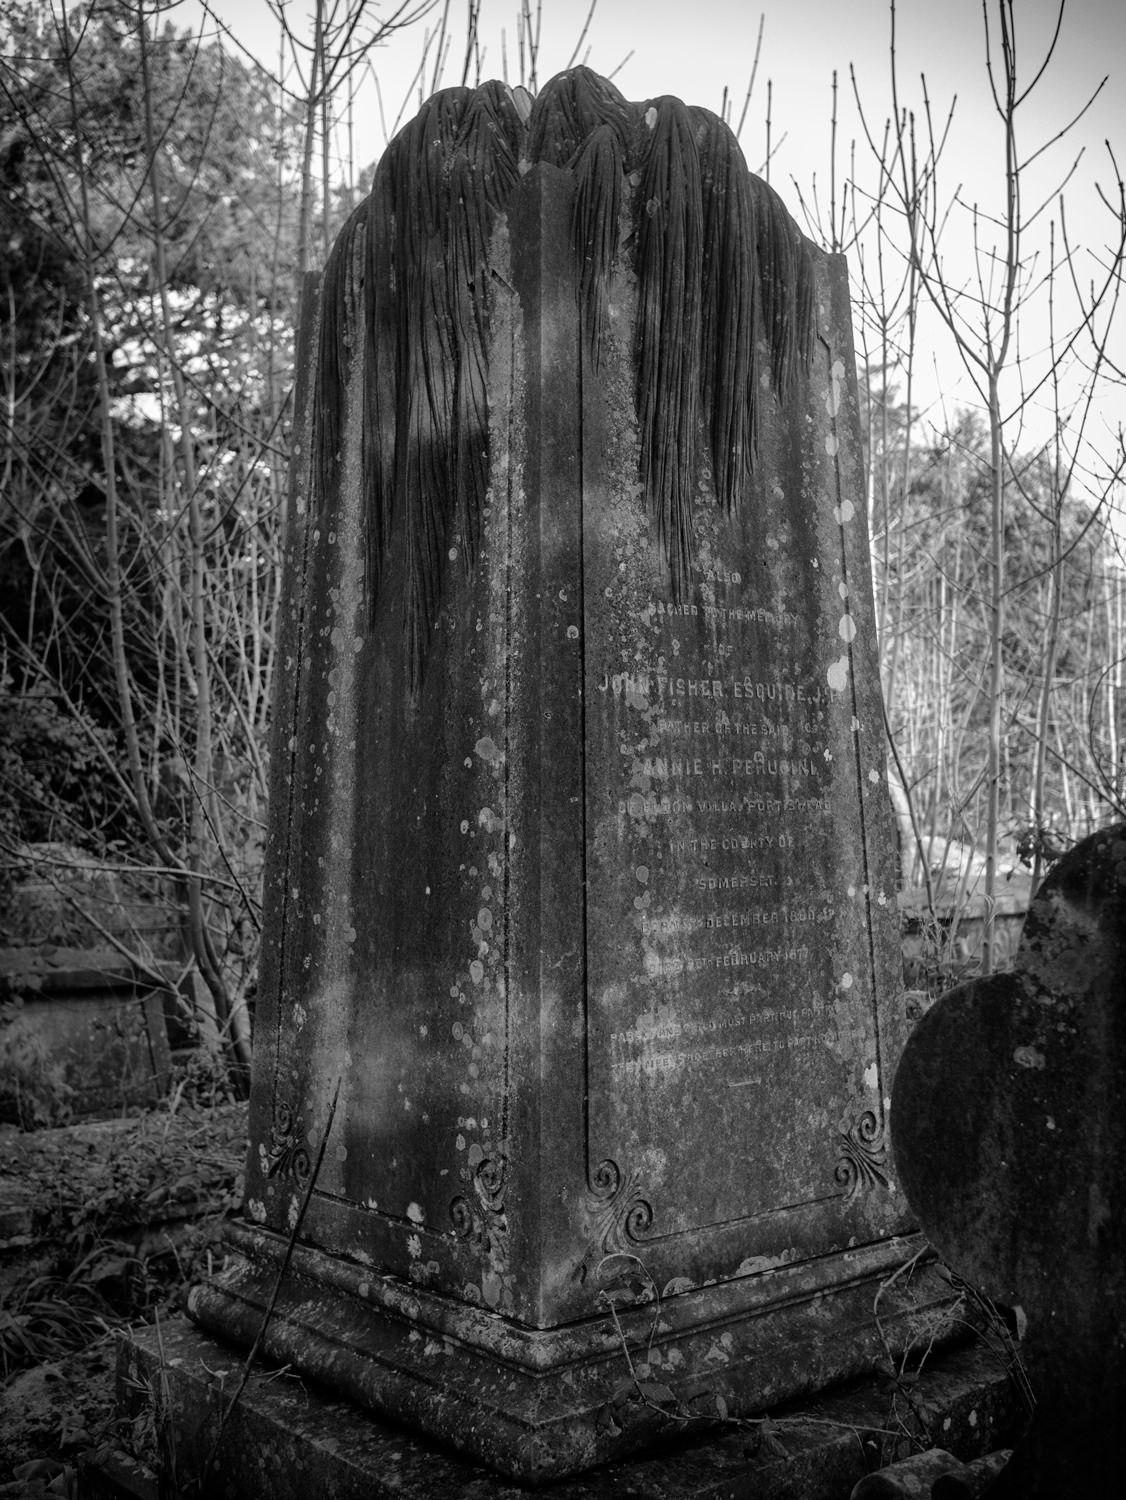 A tall, cuboid gravestone. On the top are carvings which look like they're supposed to be something like weeping willow leaves